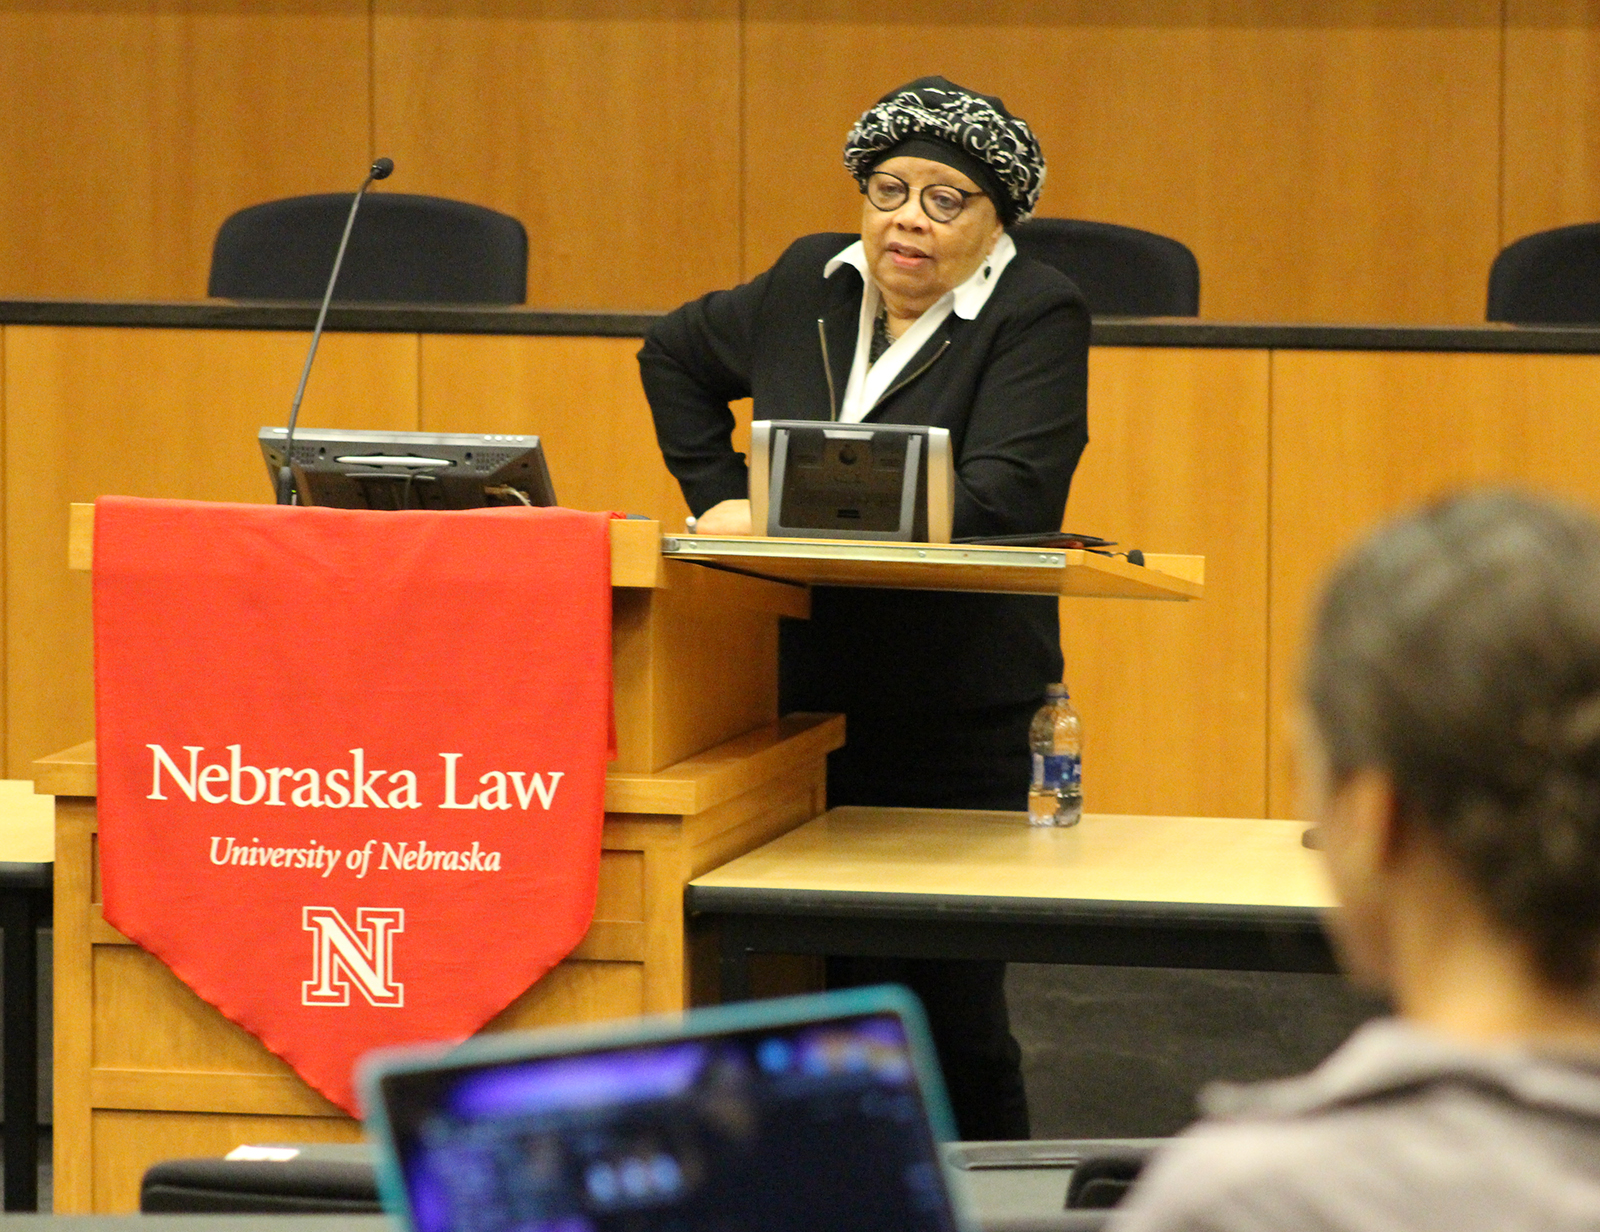 Above: University of Nebraska College of Law Acting Dean Anna Shavers welcomes 3L students back from summer break in the Hamann Auditorium in McCollum Hall on Monday, Aug. 26, 2019. (Photo by Scott Stewart)